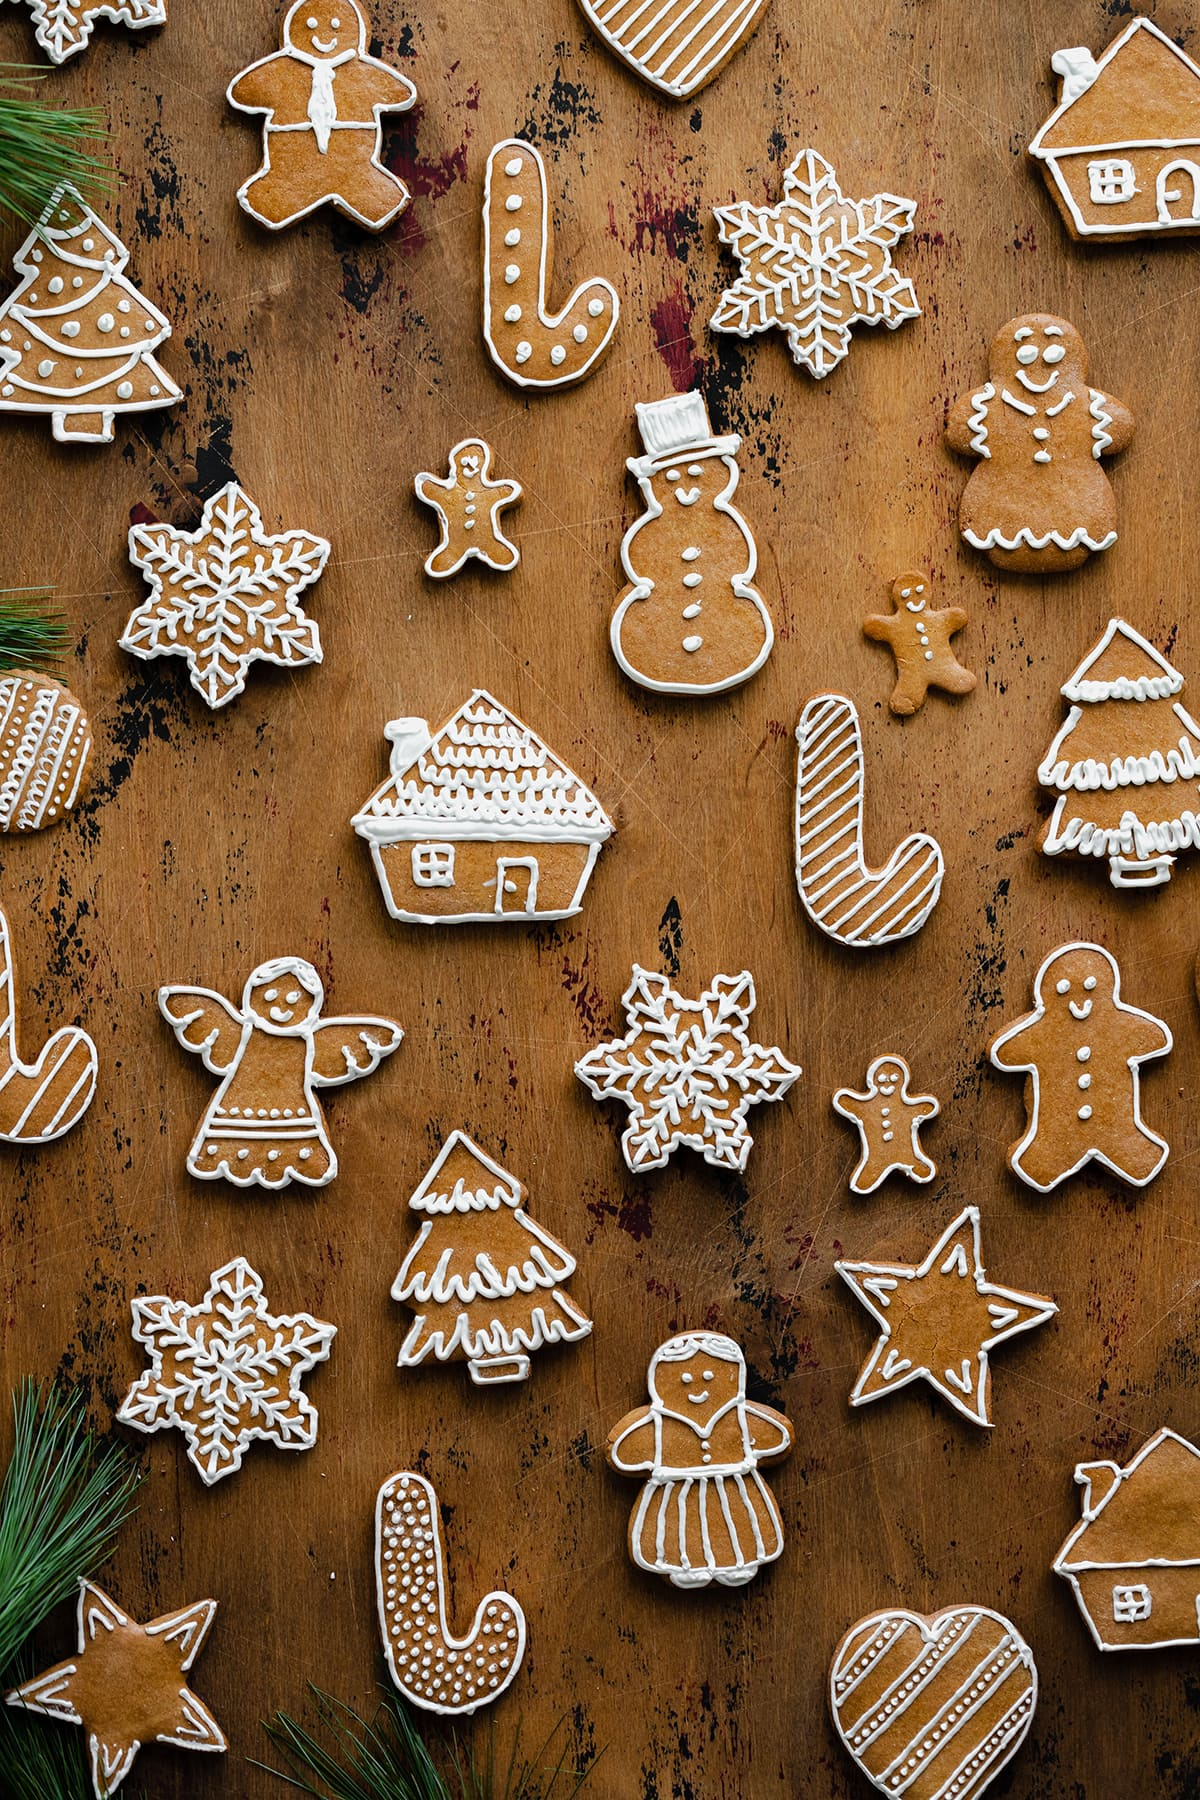 Czech Gingerbread cookies layed out evenly on a light wooden background. Decorated with white icing.